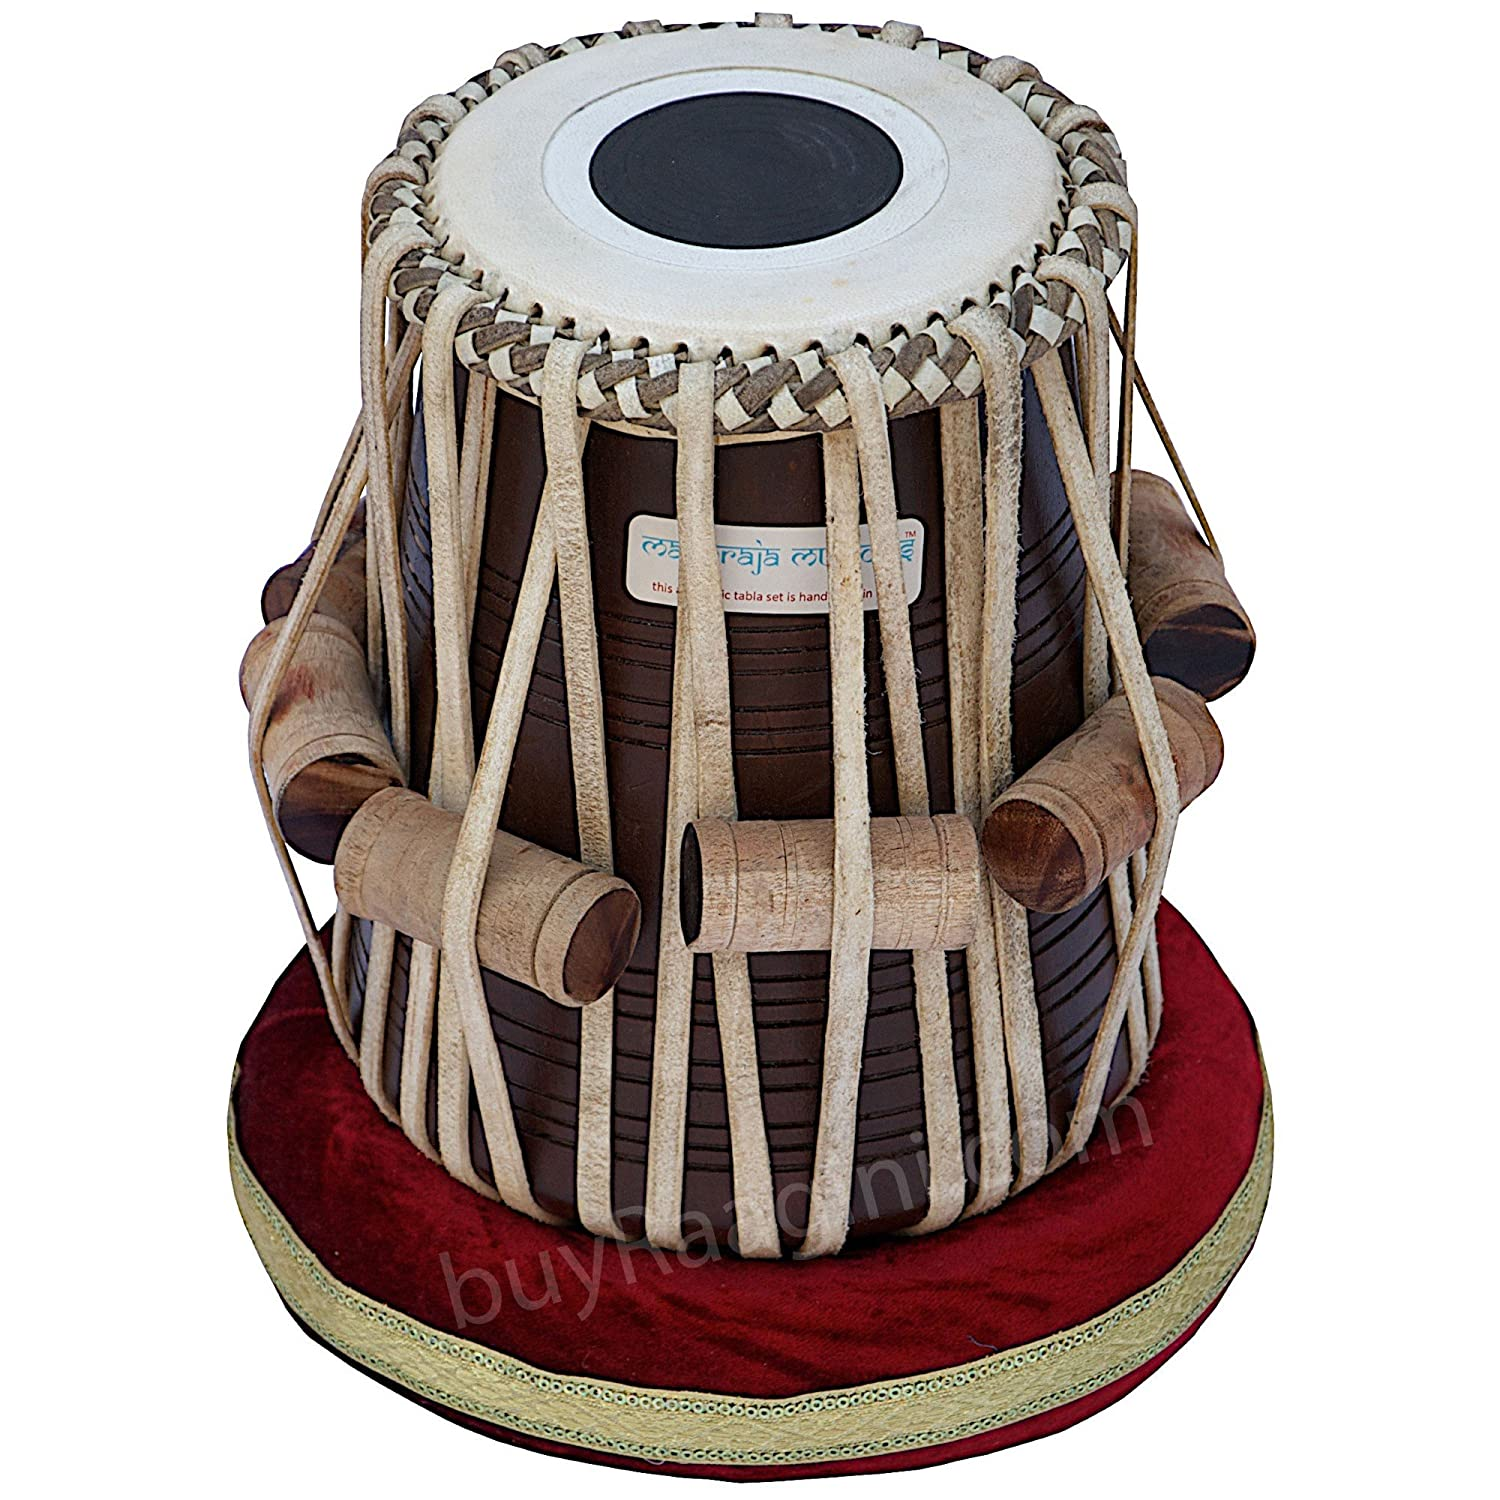 Amazon.com: Maharaja Musicals Tabla Drum Set, 4.5 Kg Copper Bayan - Ganesha Kalash Design, Sheesham Dayan, Tuneable To C Sharp, Padded Bag, Book, Hammer, ...